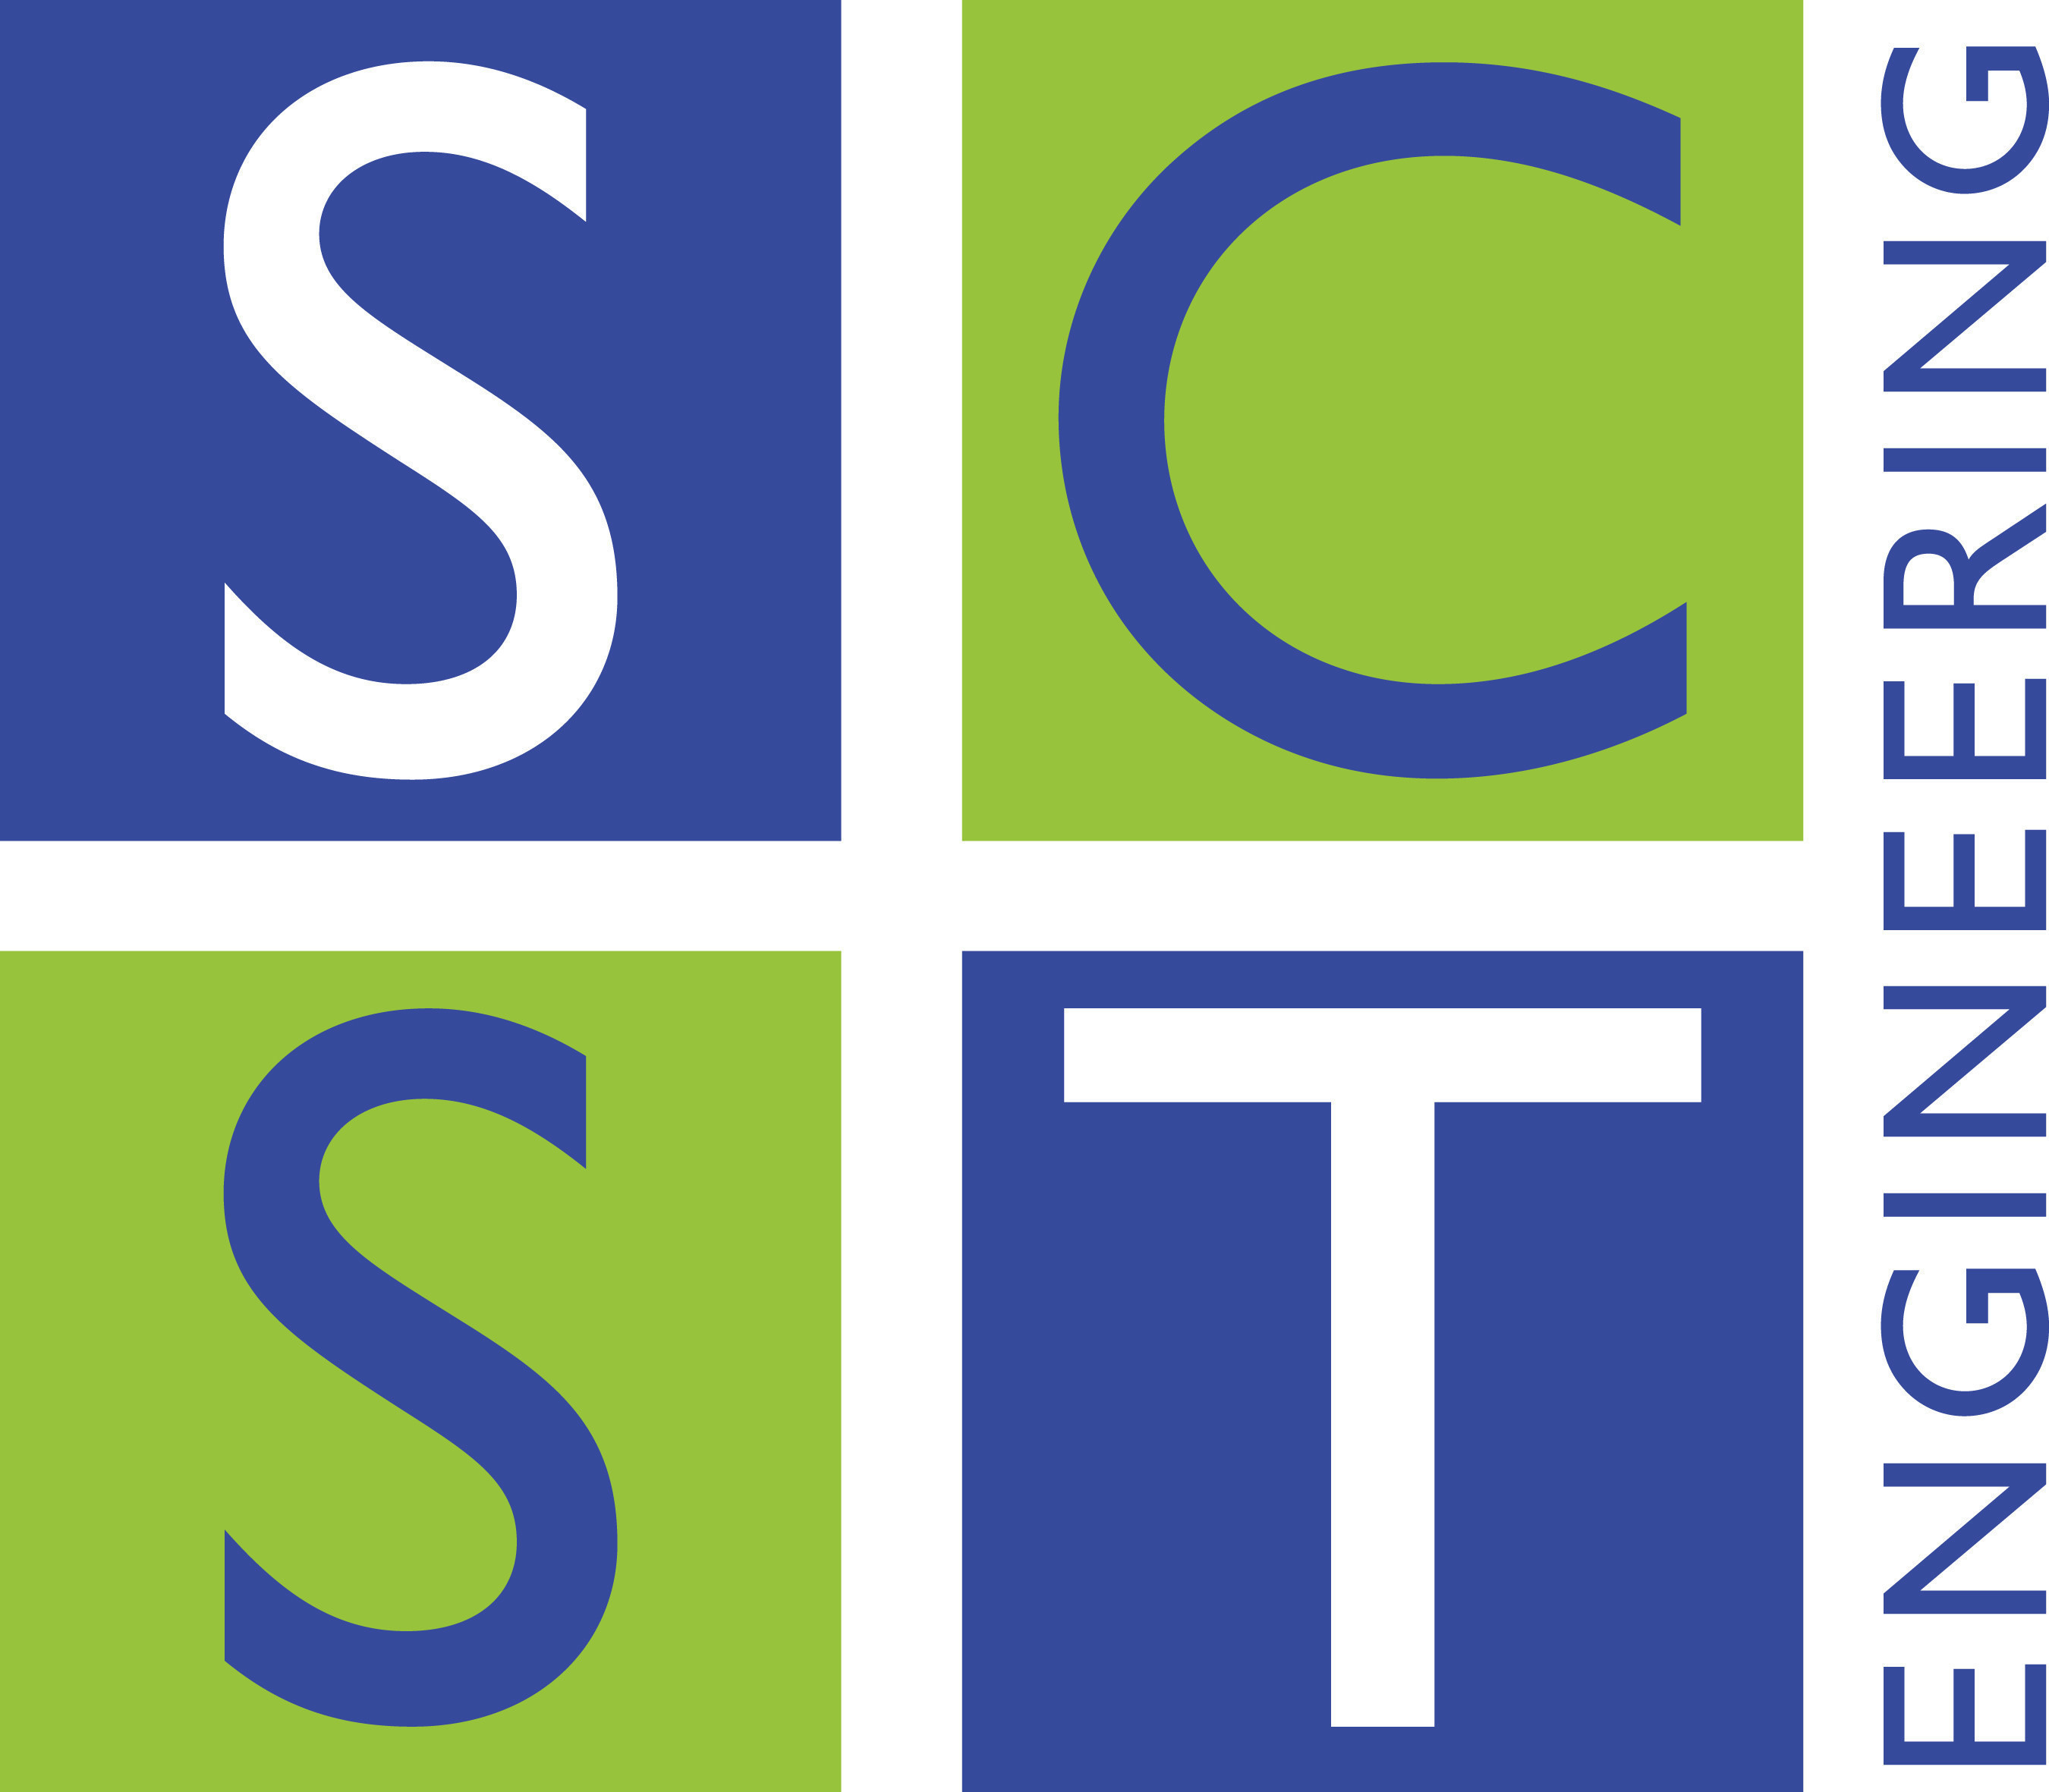 Southern California Soil & Testing, Inc. has legally changed its name to SCST, Inc